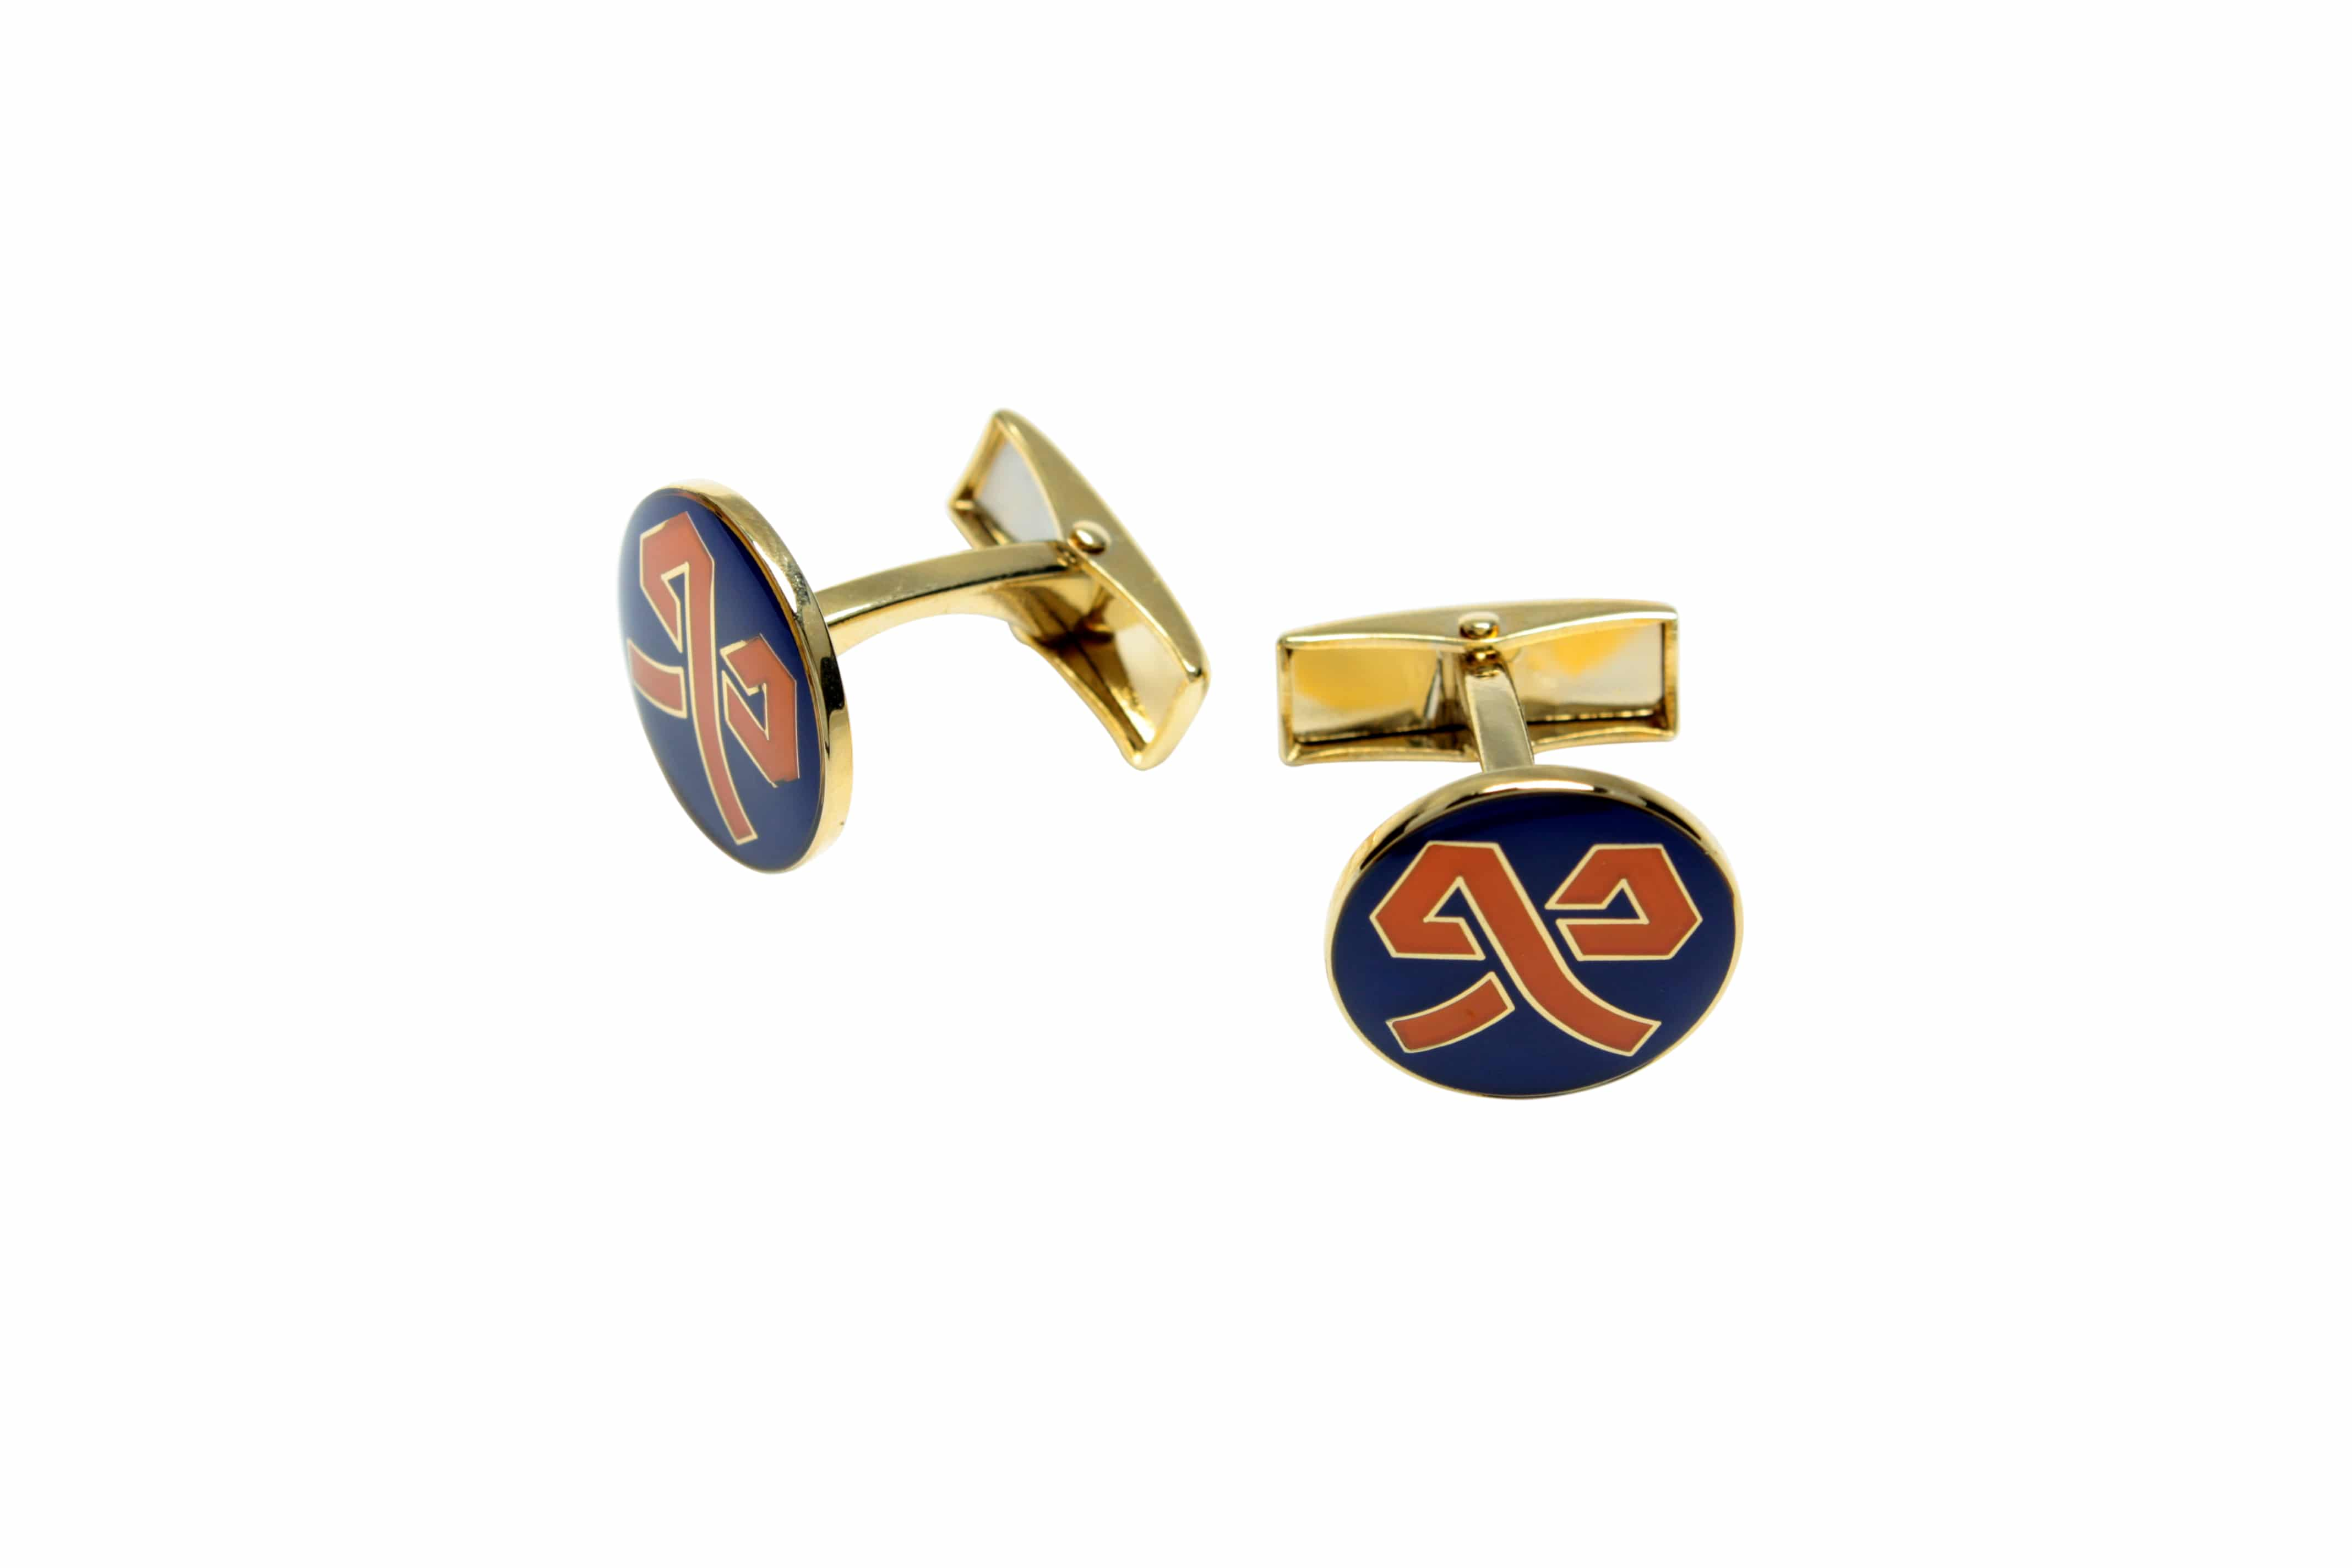 Coloured Cufflinks tailor made